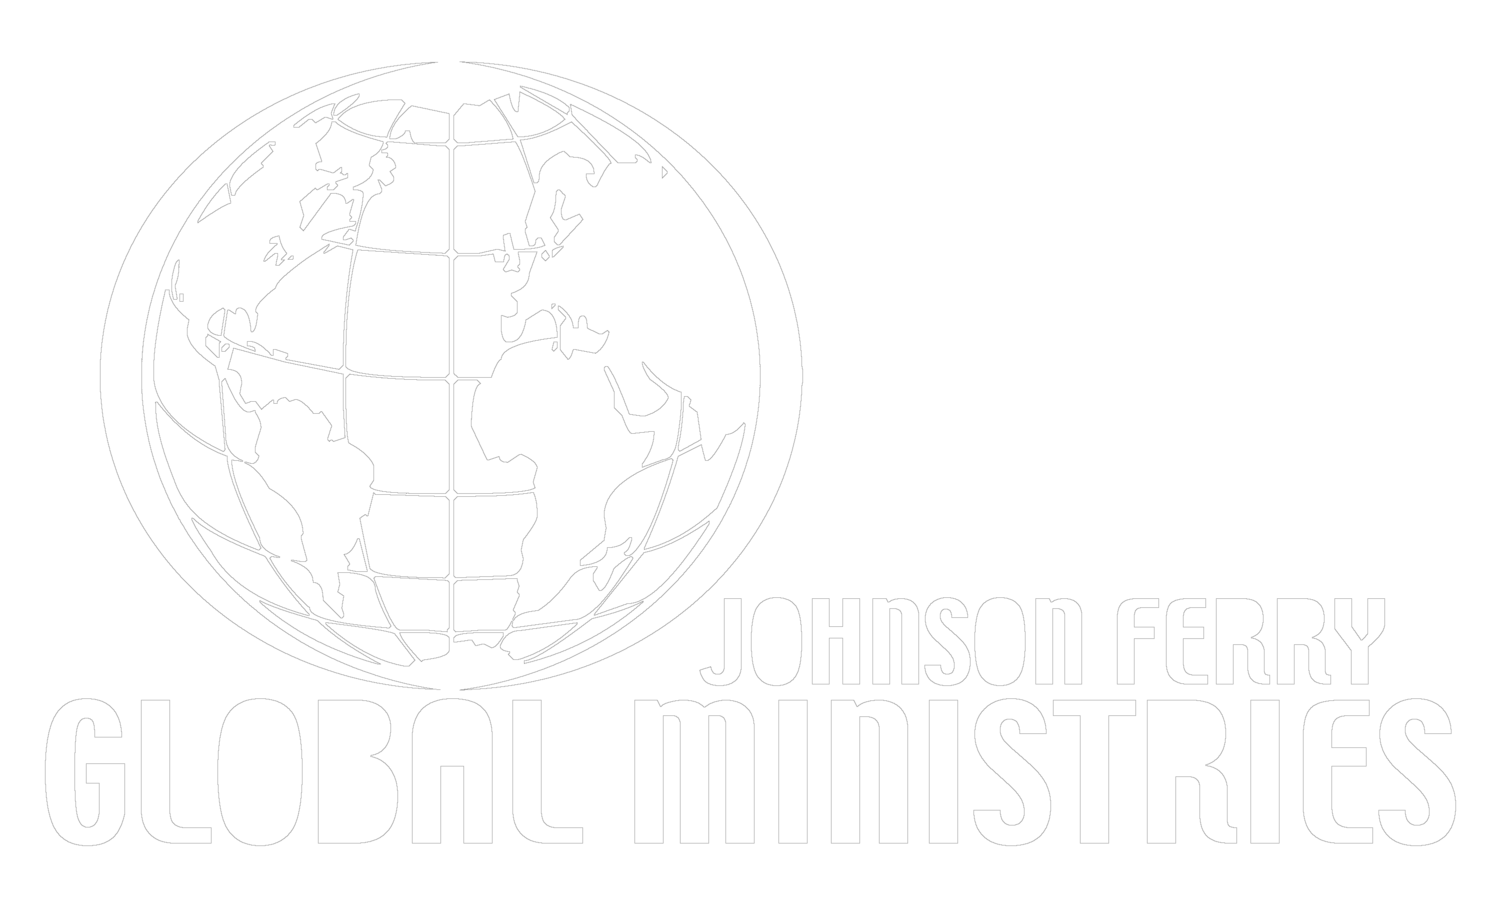 Johnson Ferry Global